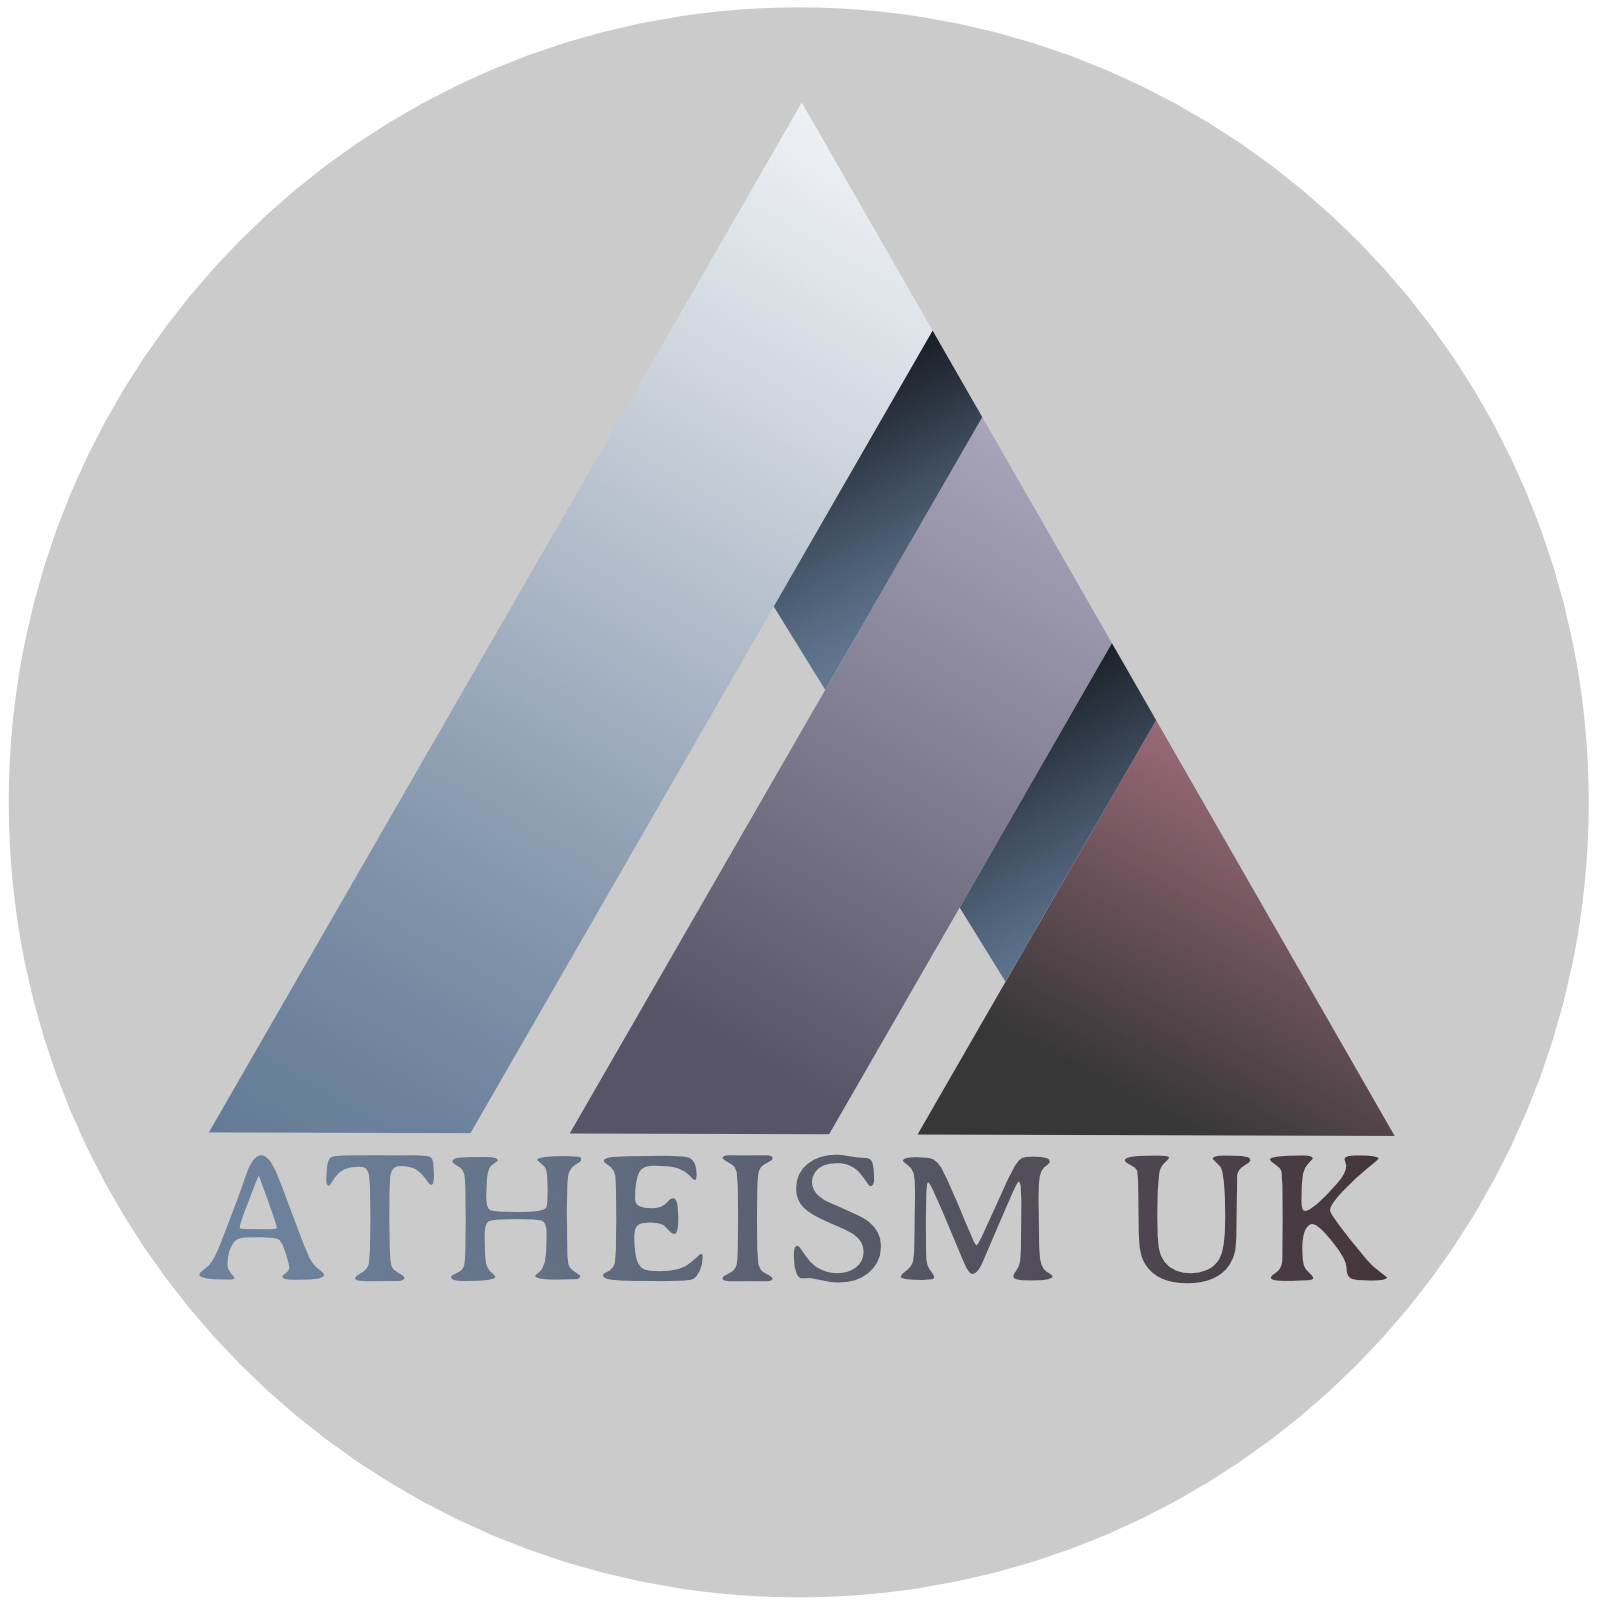 Atheism UK Logo